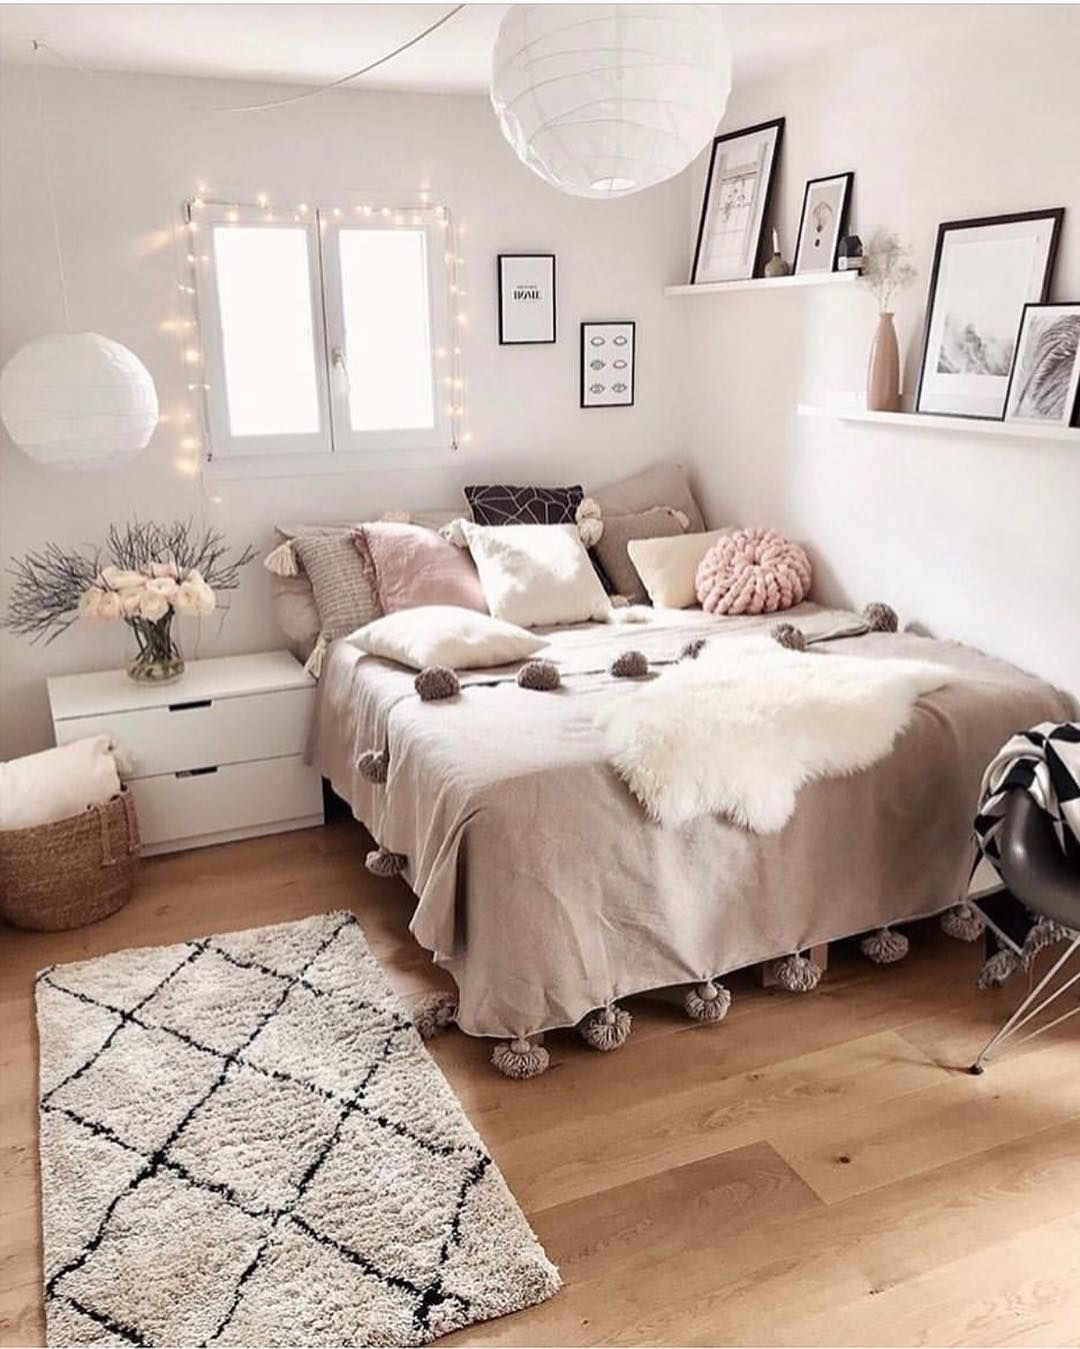 Interior Design For A Boy Small Bedroom Smallroomdesignmaximizespace Bedroom Layouts Remodel Bedroom Cool Bedrooms For Boys